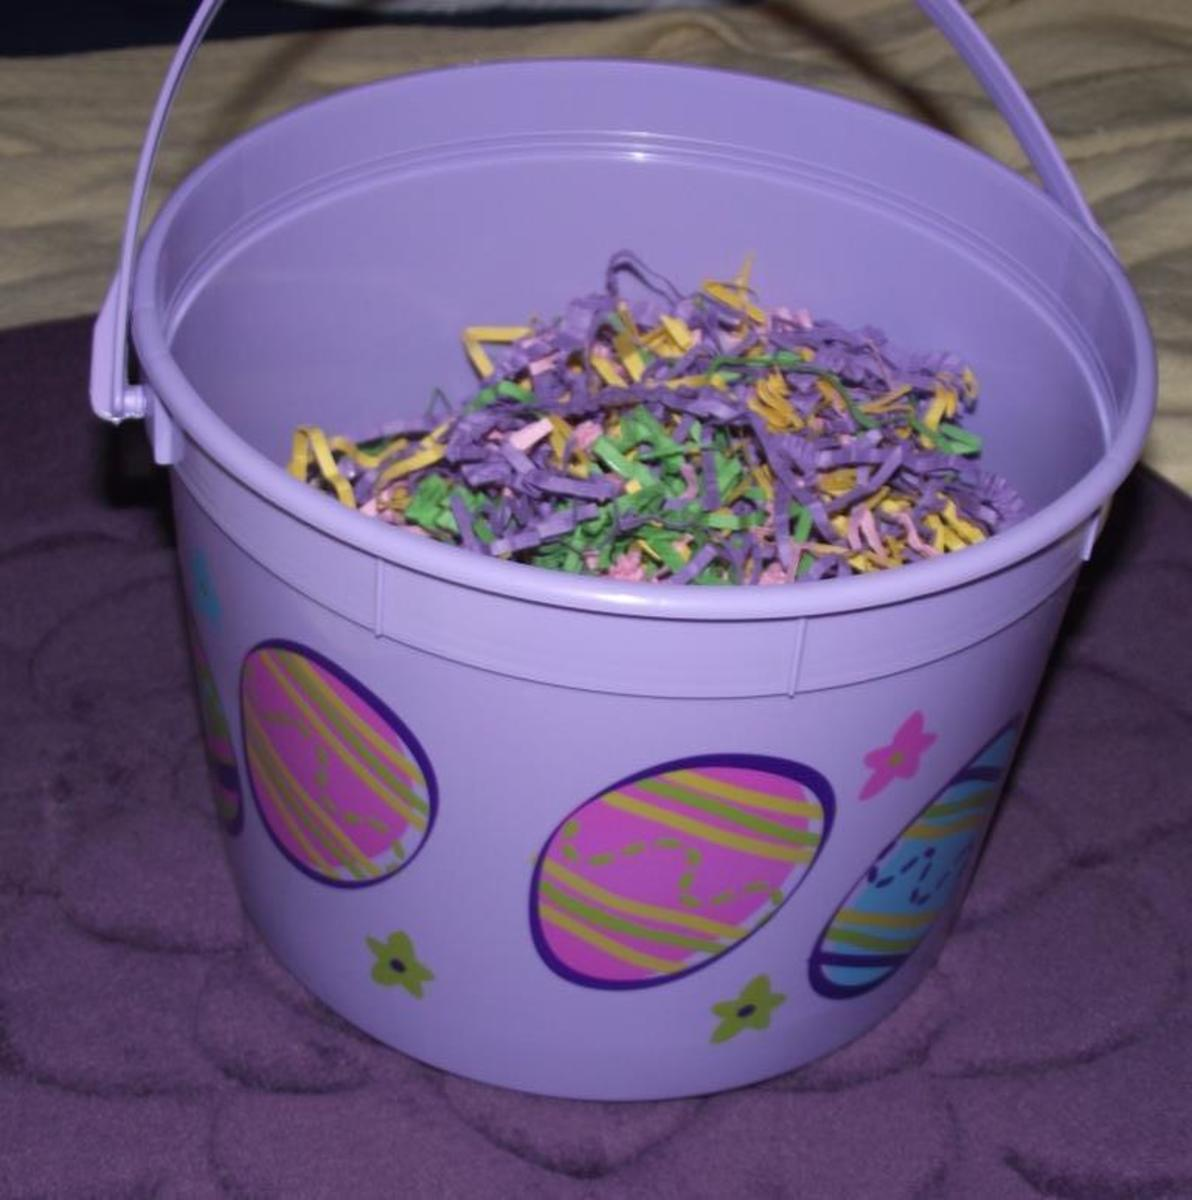 Why not a bucket instead of a basket?